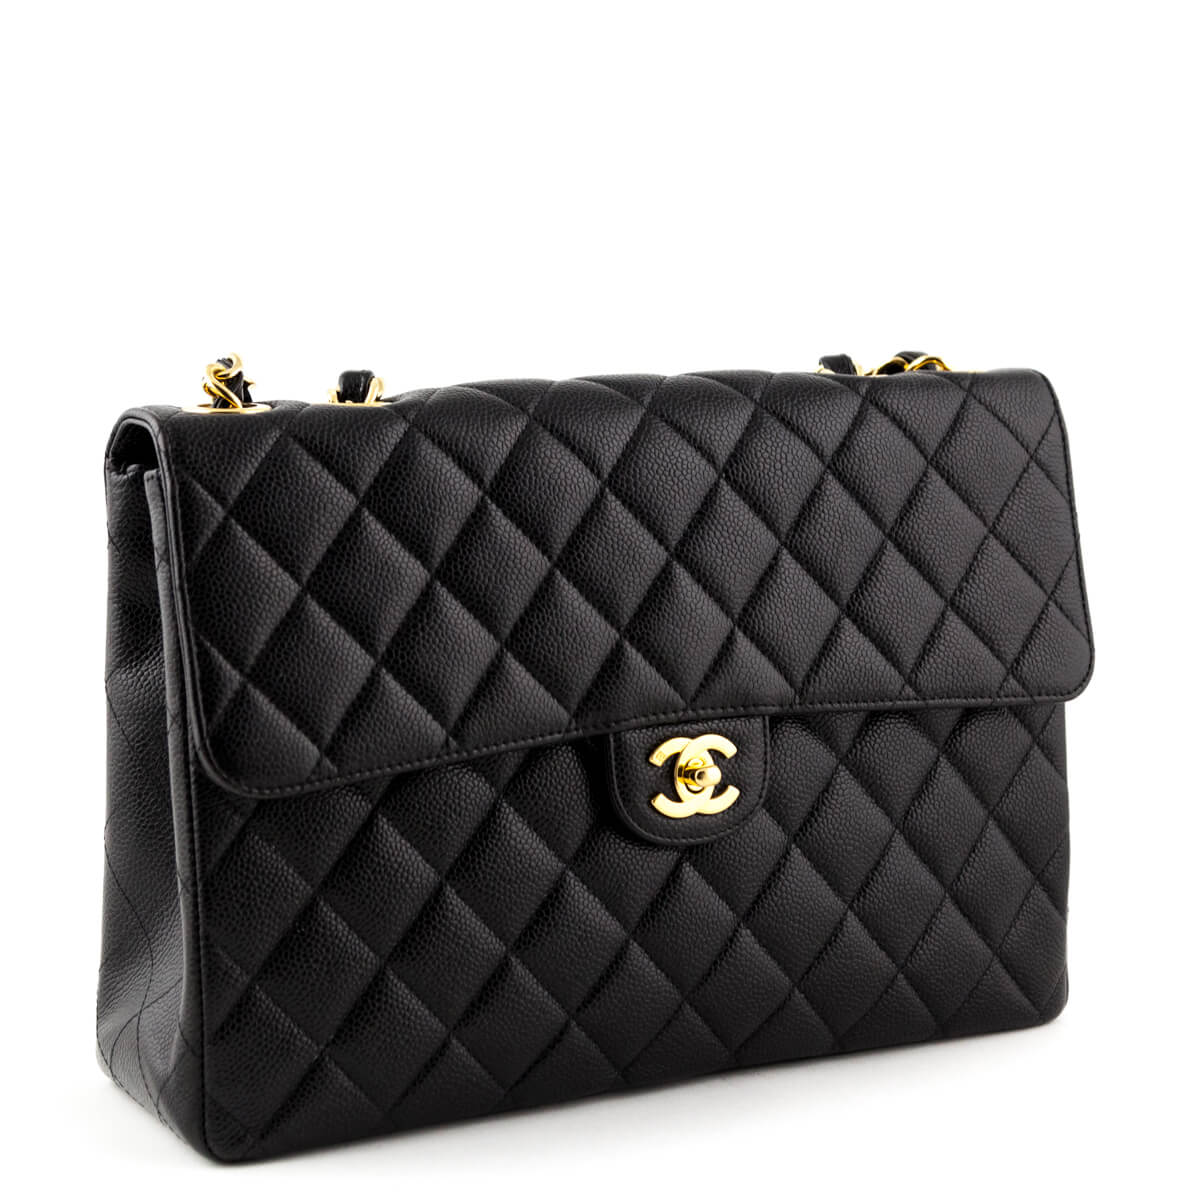 3774764304eb4e ... Chanel Vintage Black Caviar Jumbo Classic Flap Bag - LOVE that BAG - Preowned  Authentic Designer ...